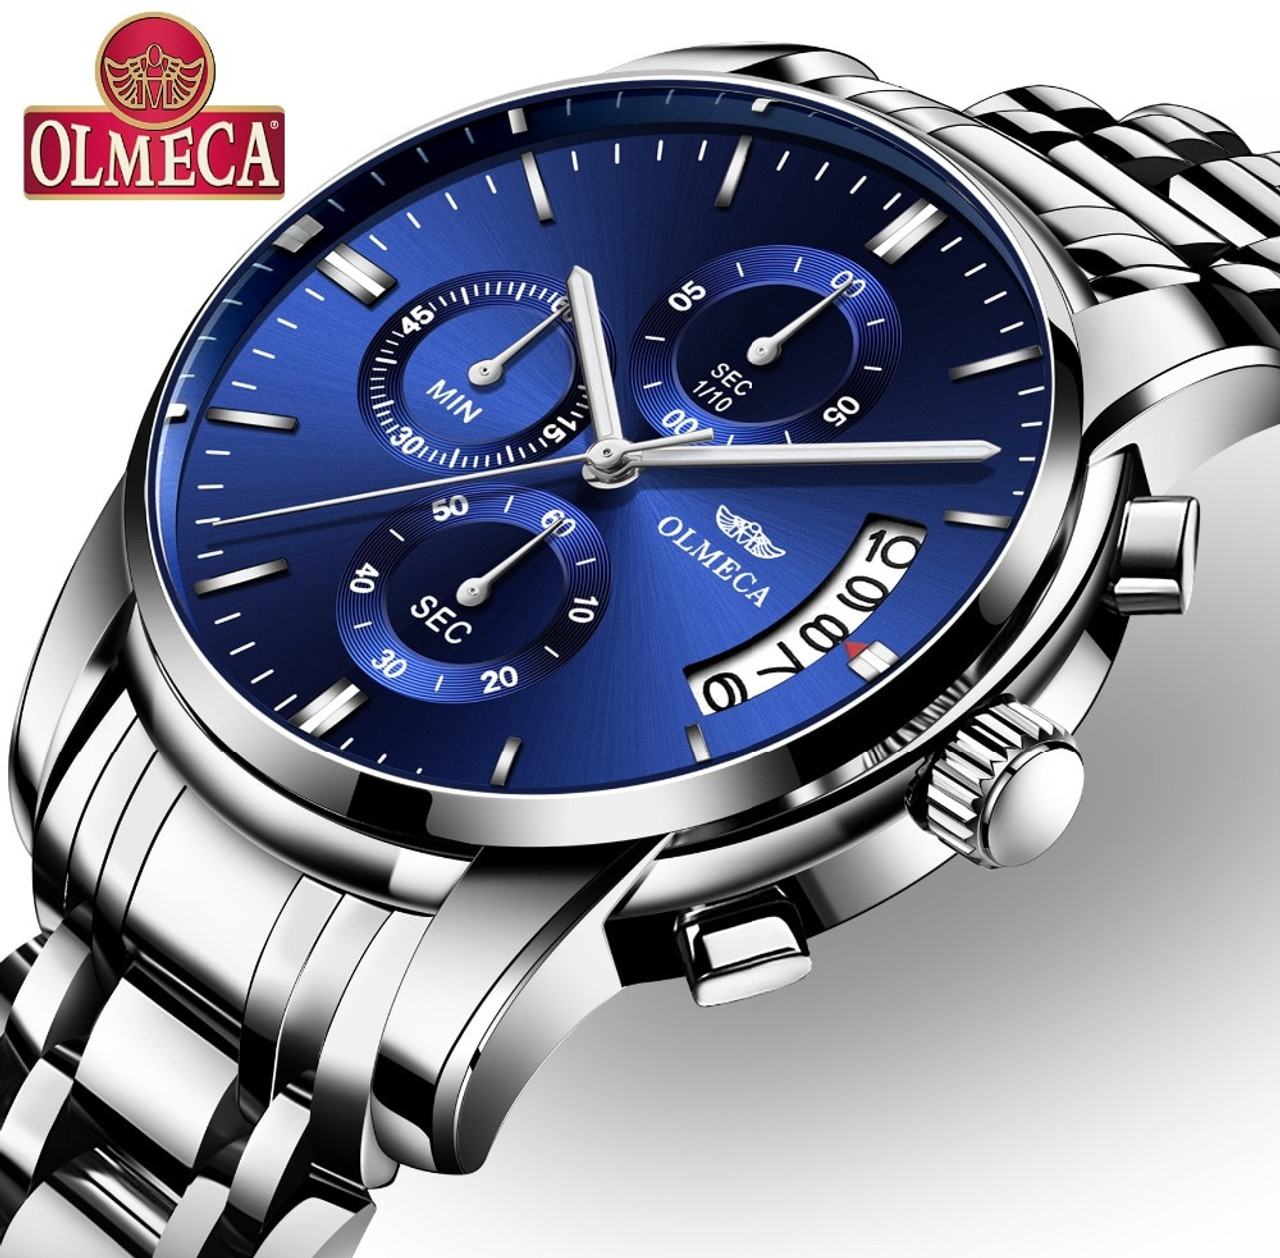 8827fc193de OLMECA Clock Military Relogio Masculino Waterproof Watches Stainless Steel  Fashion Chronograph Wrist Watch Watches for men ...